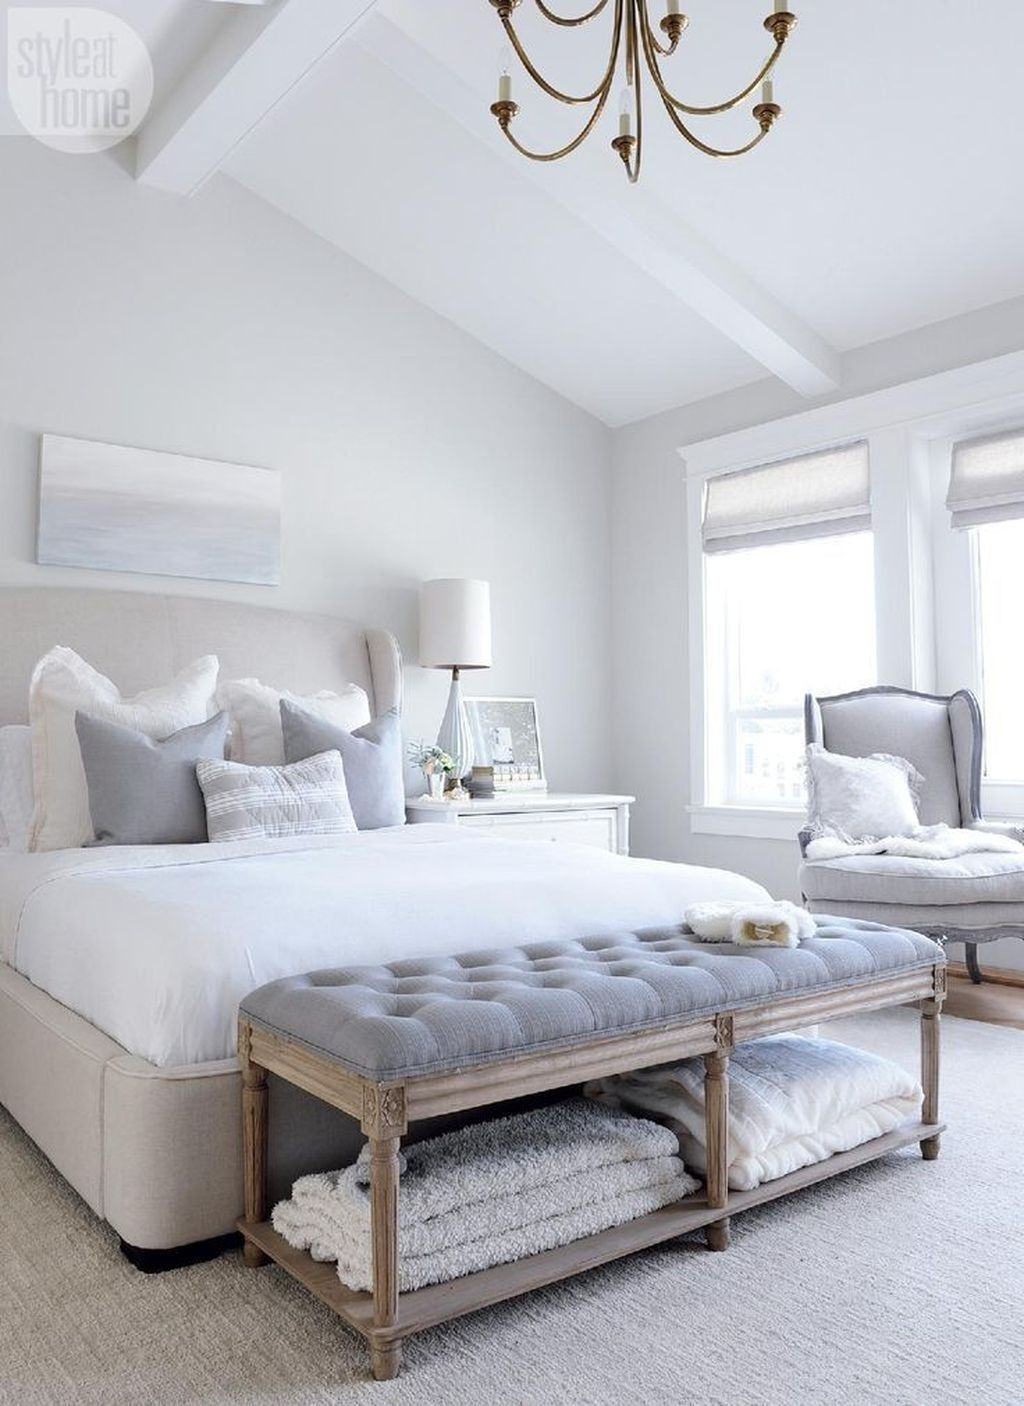 30 Newest Master Bedroom Ideas For Wonderful Home Bedroom 30 Newest Master Bedroom Id Bedroom Decor Master For Couples Bedroom Decor Cozy Bedroom Trends Main bedroom ideas new